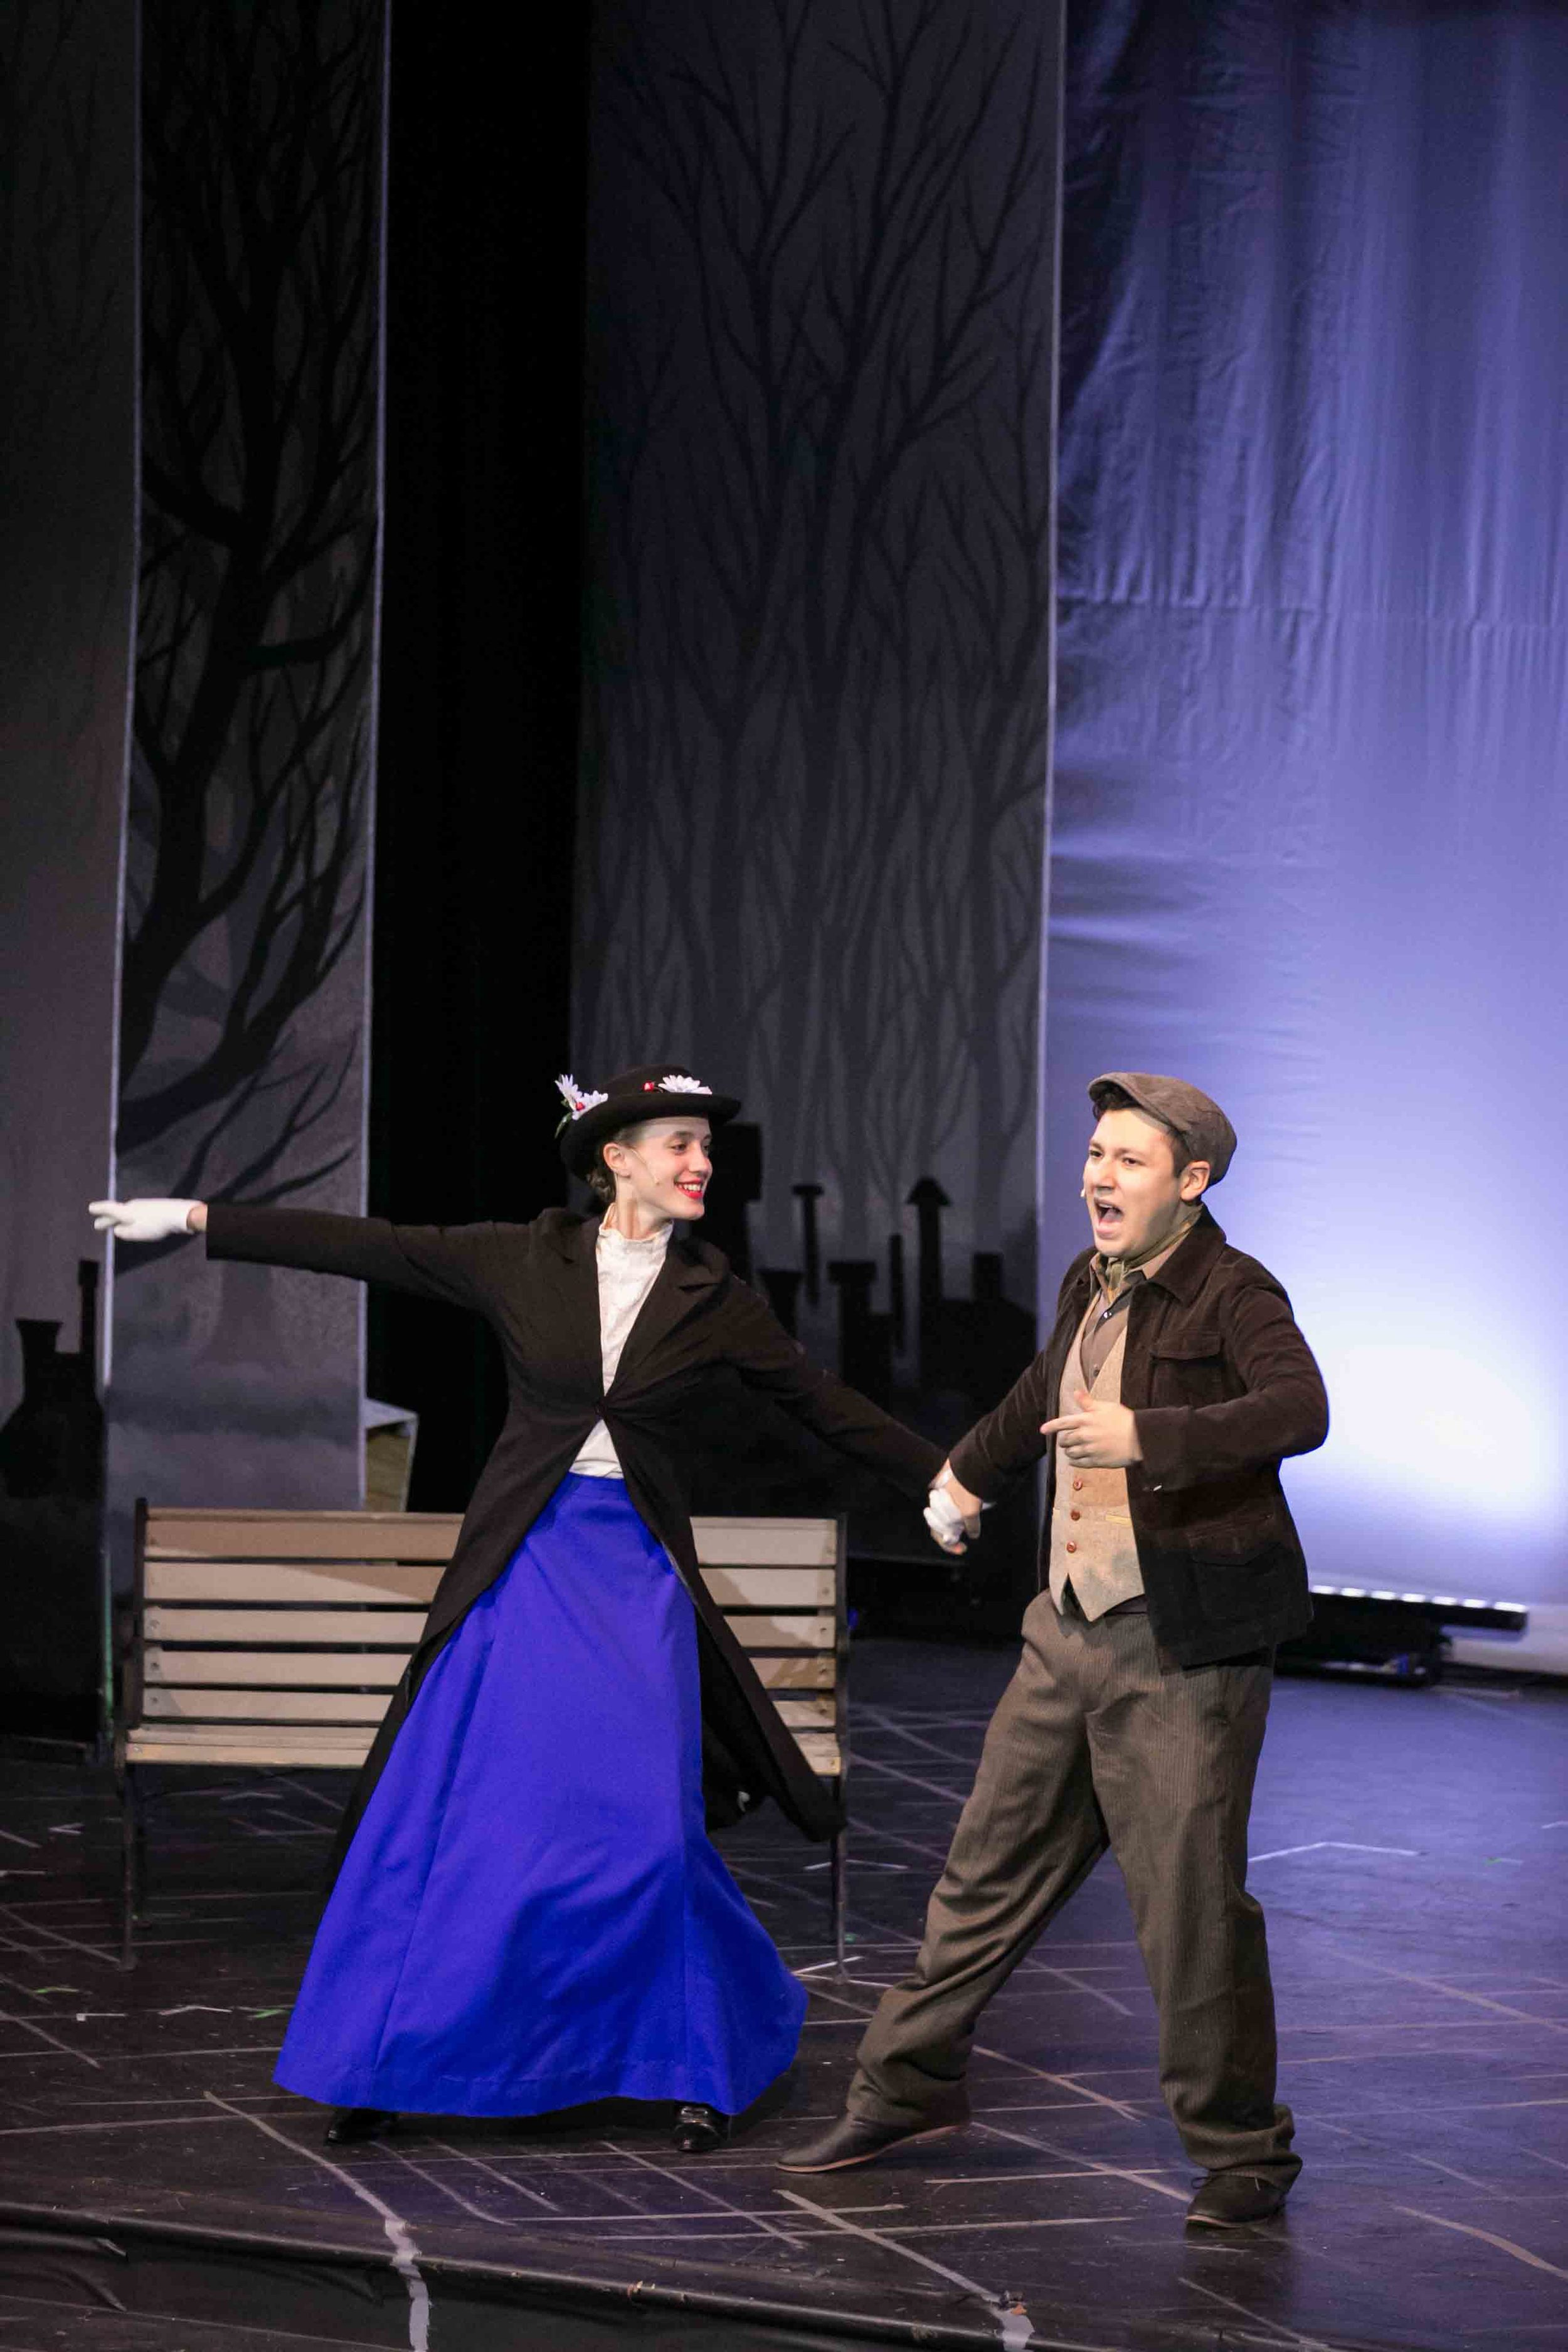 2-4-16 Mary Poppins Proper Cast 0106.jpg